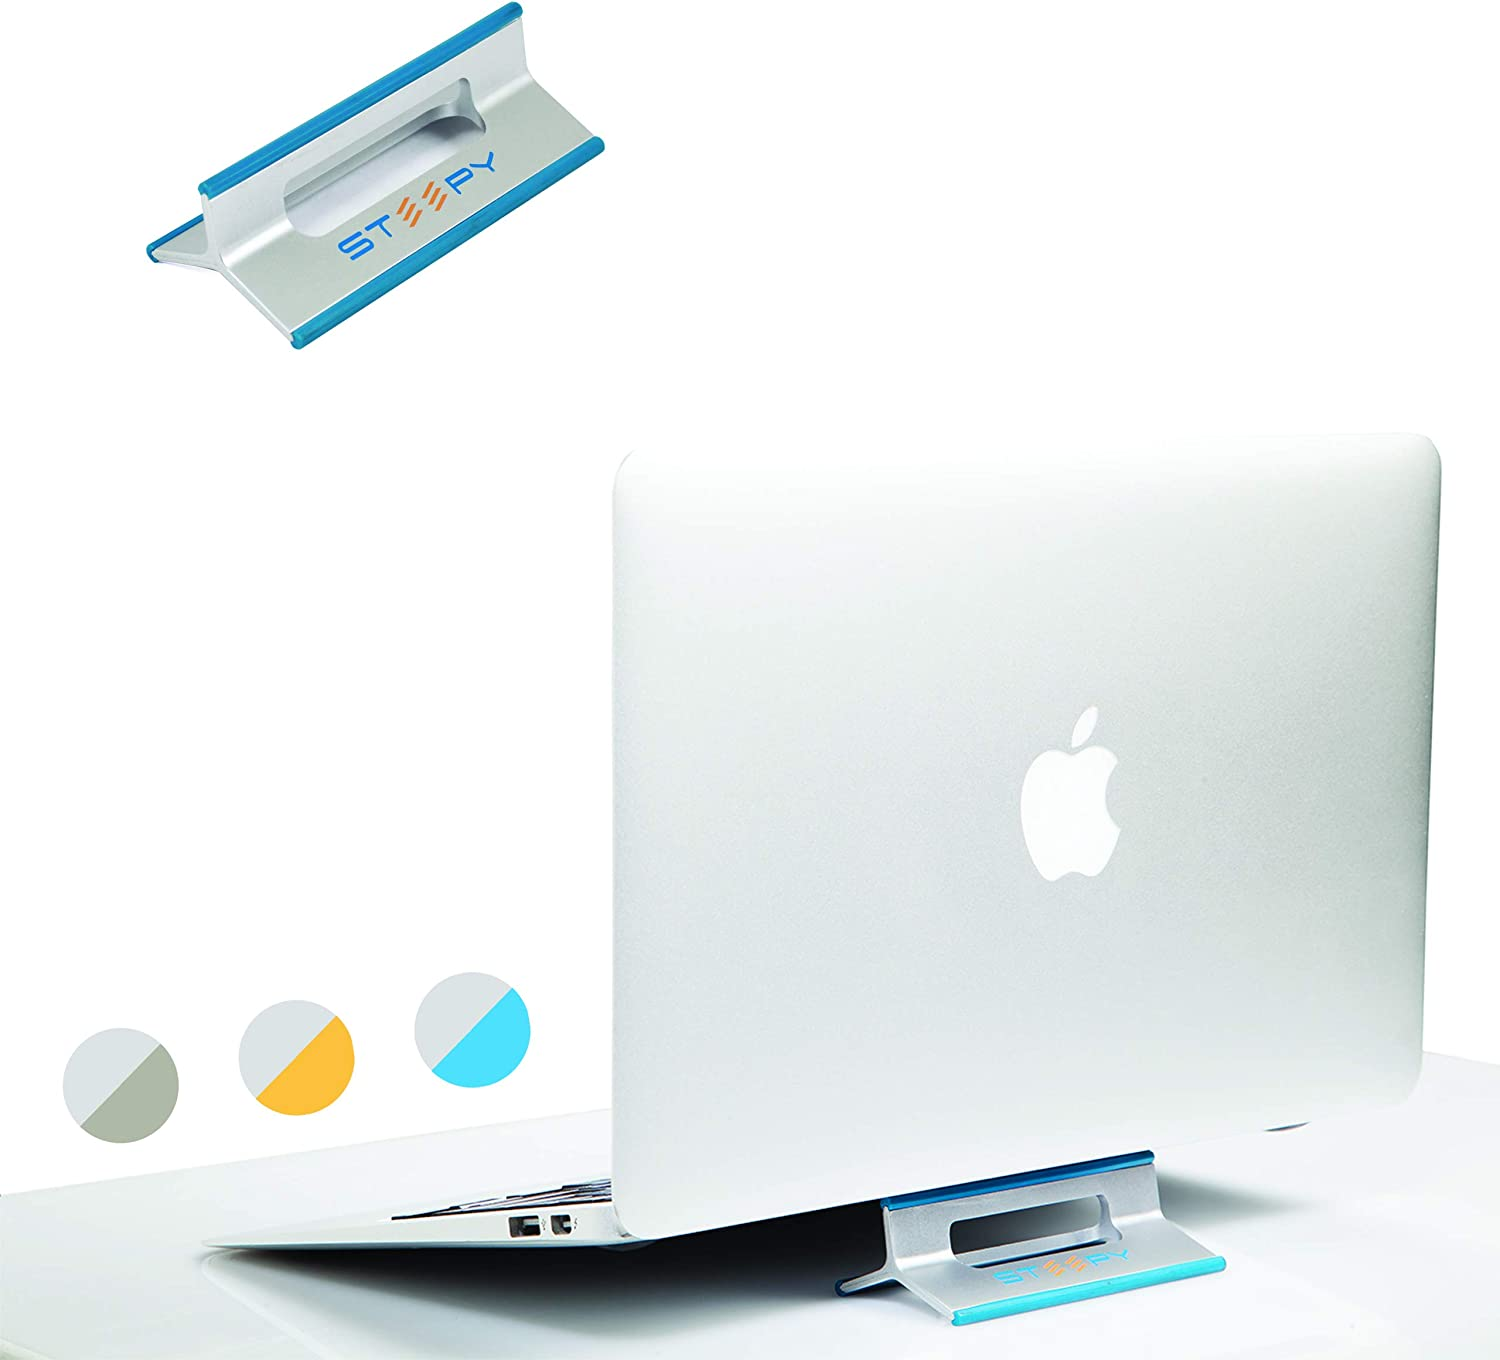 Steepy Stand Riser Ventilated Desk Accesory for Laptop | Notebook | Smartphone | iPad (Blue Ocean)